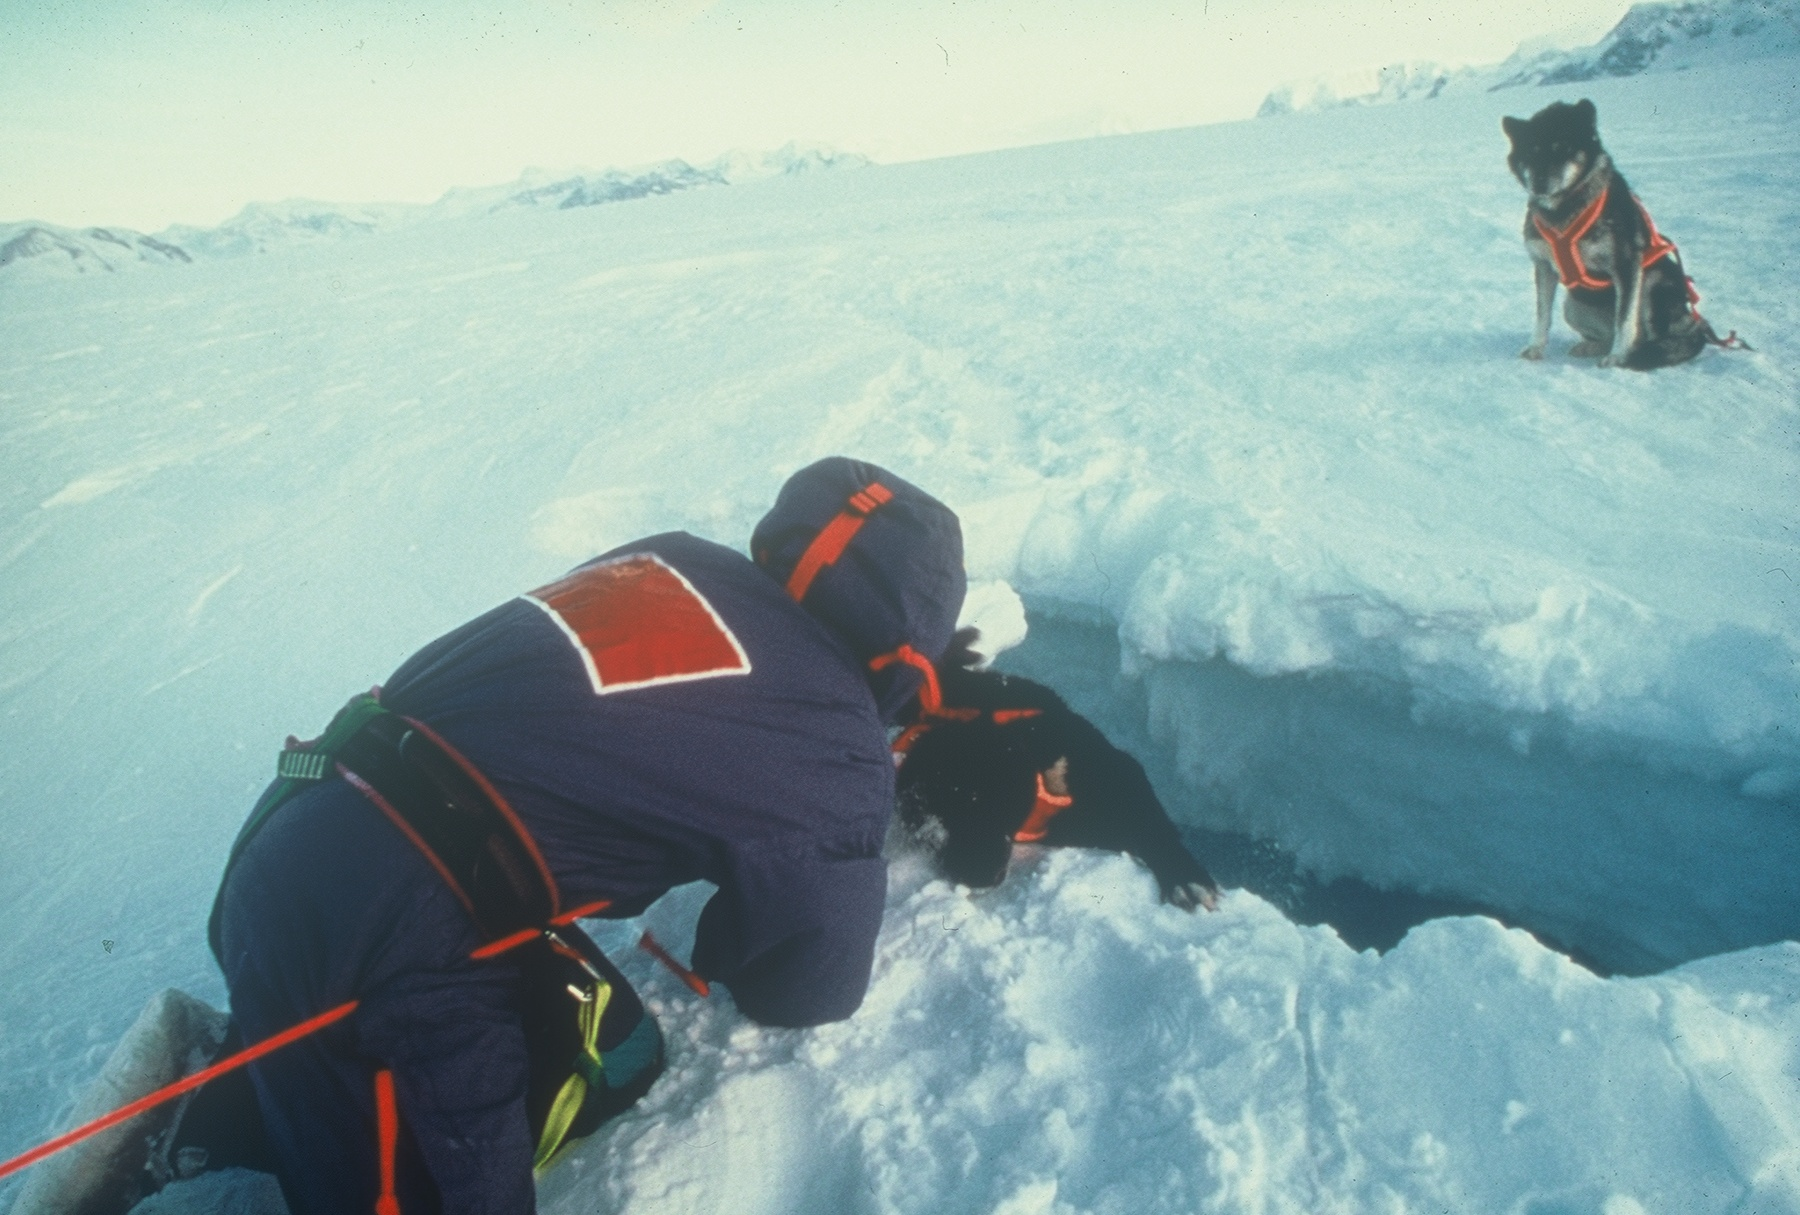 Rescuing the dog fell into a crevasse